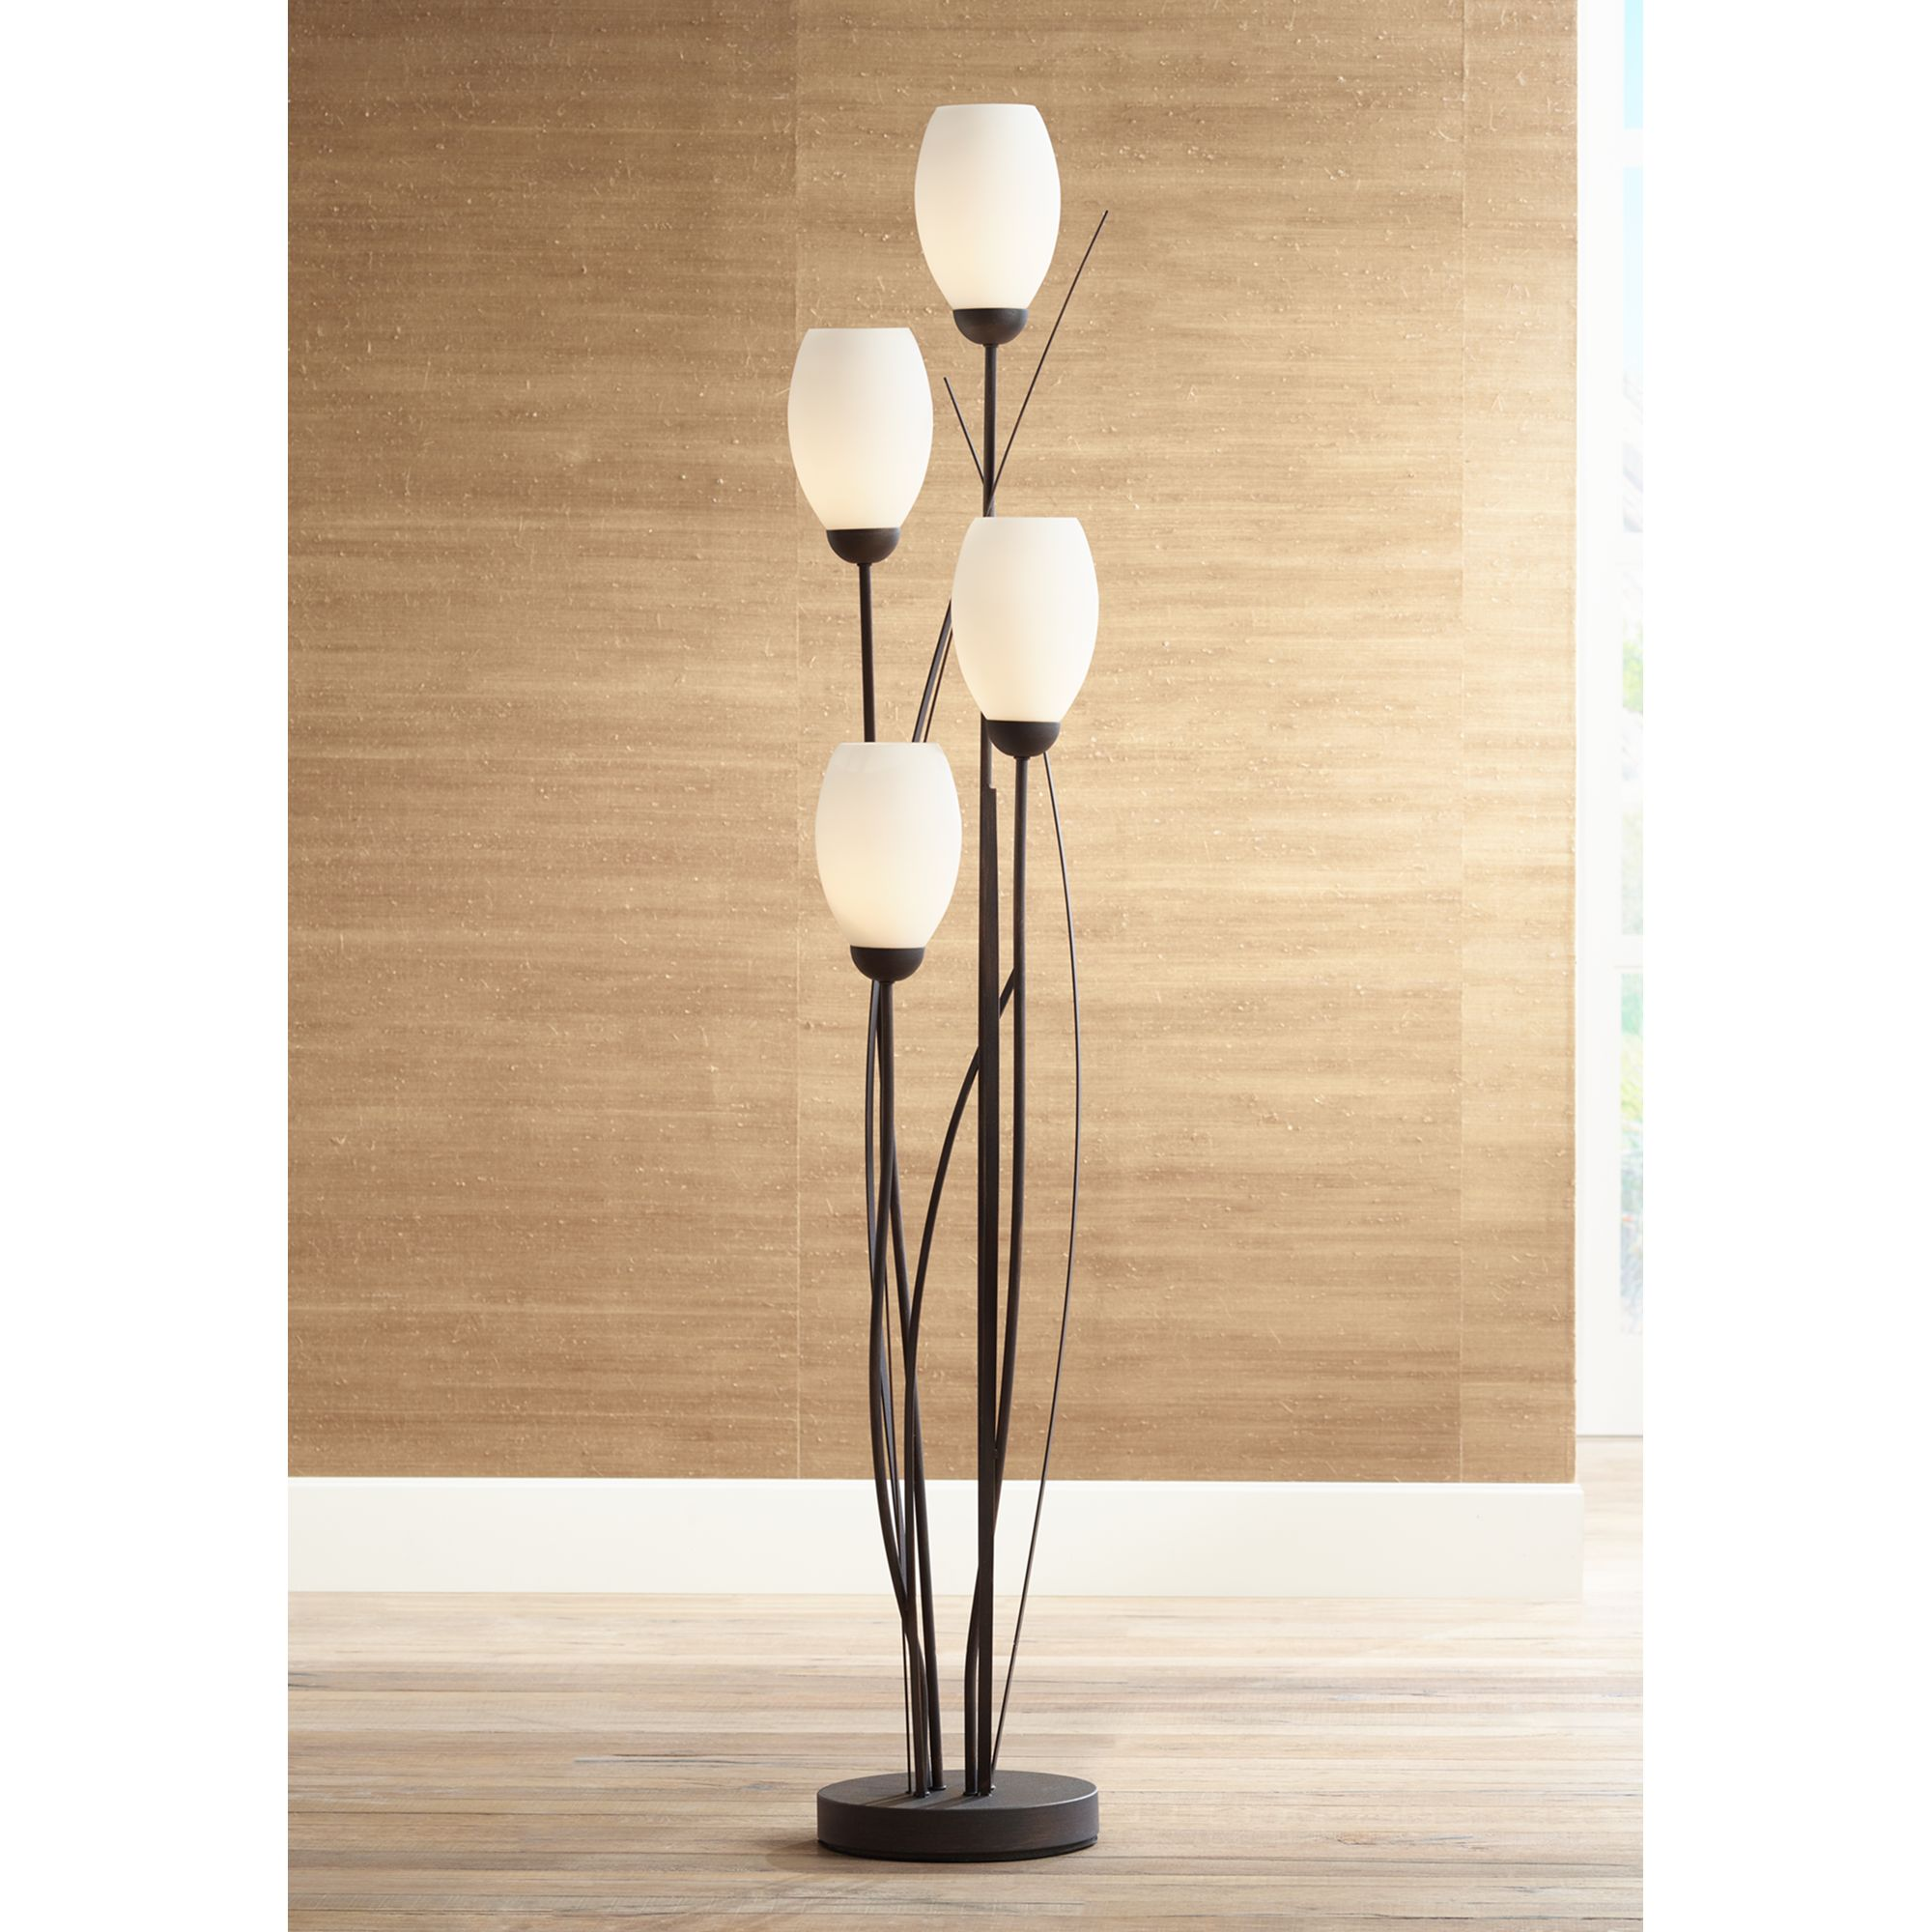 Franklin Iron Works Black Metal And White Glass Tulip 4 Light Floor Lamp by Franklin Iron Works